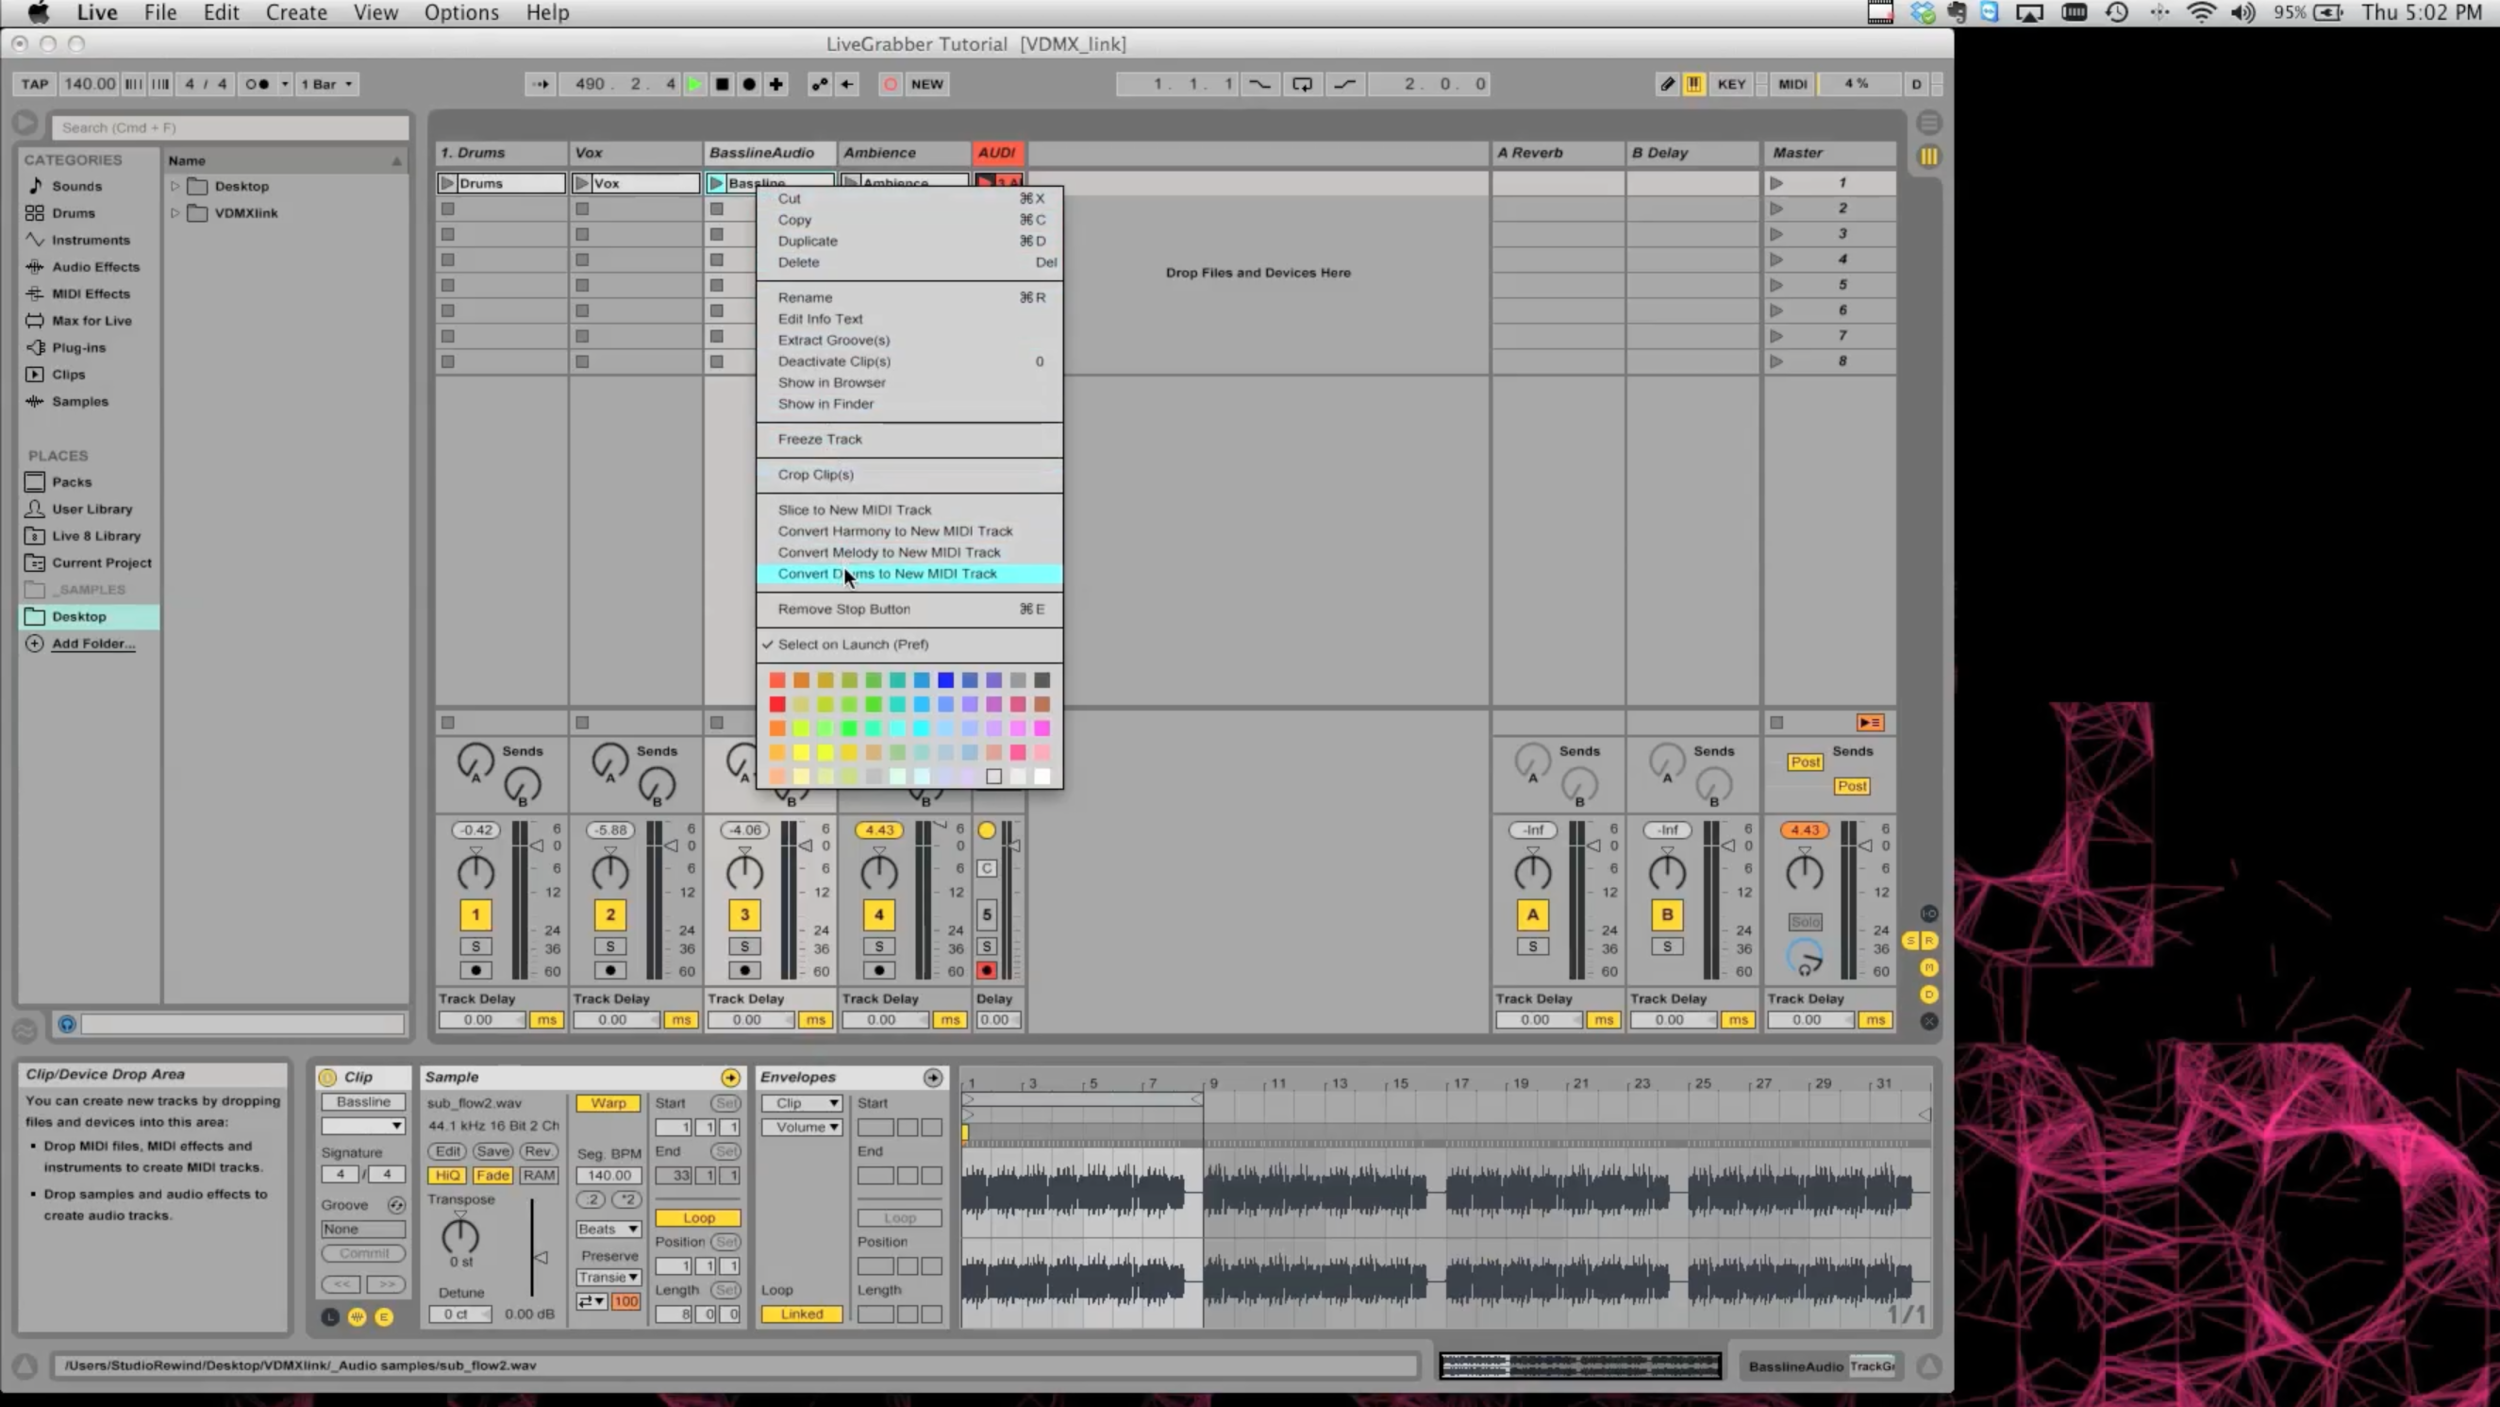 Guest Tutorial: 4 ways to sync VDMX and Ableton Live with